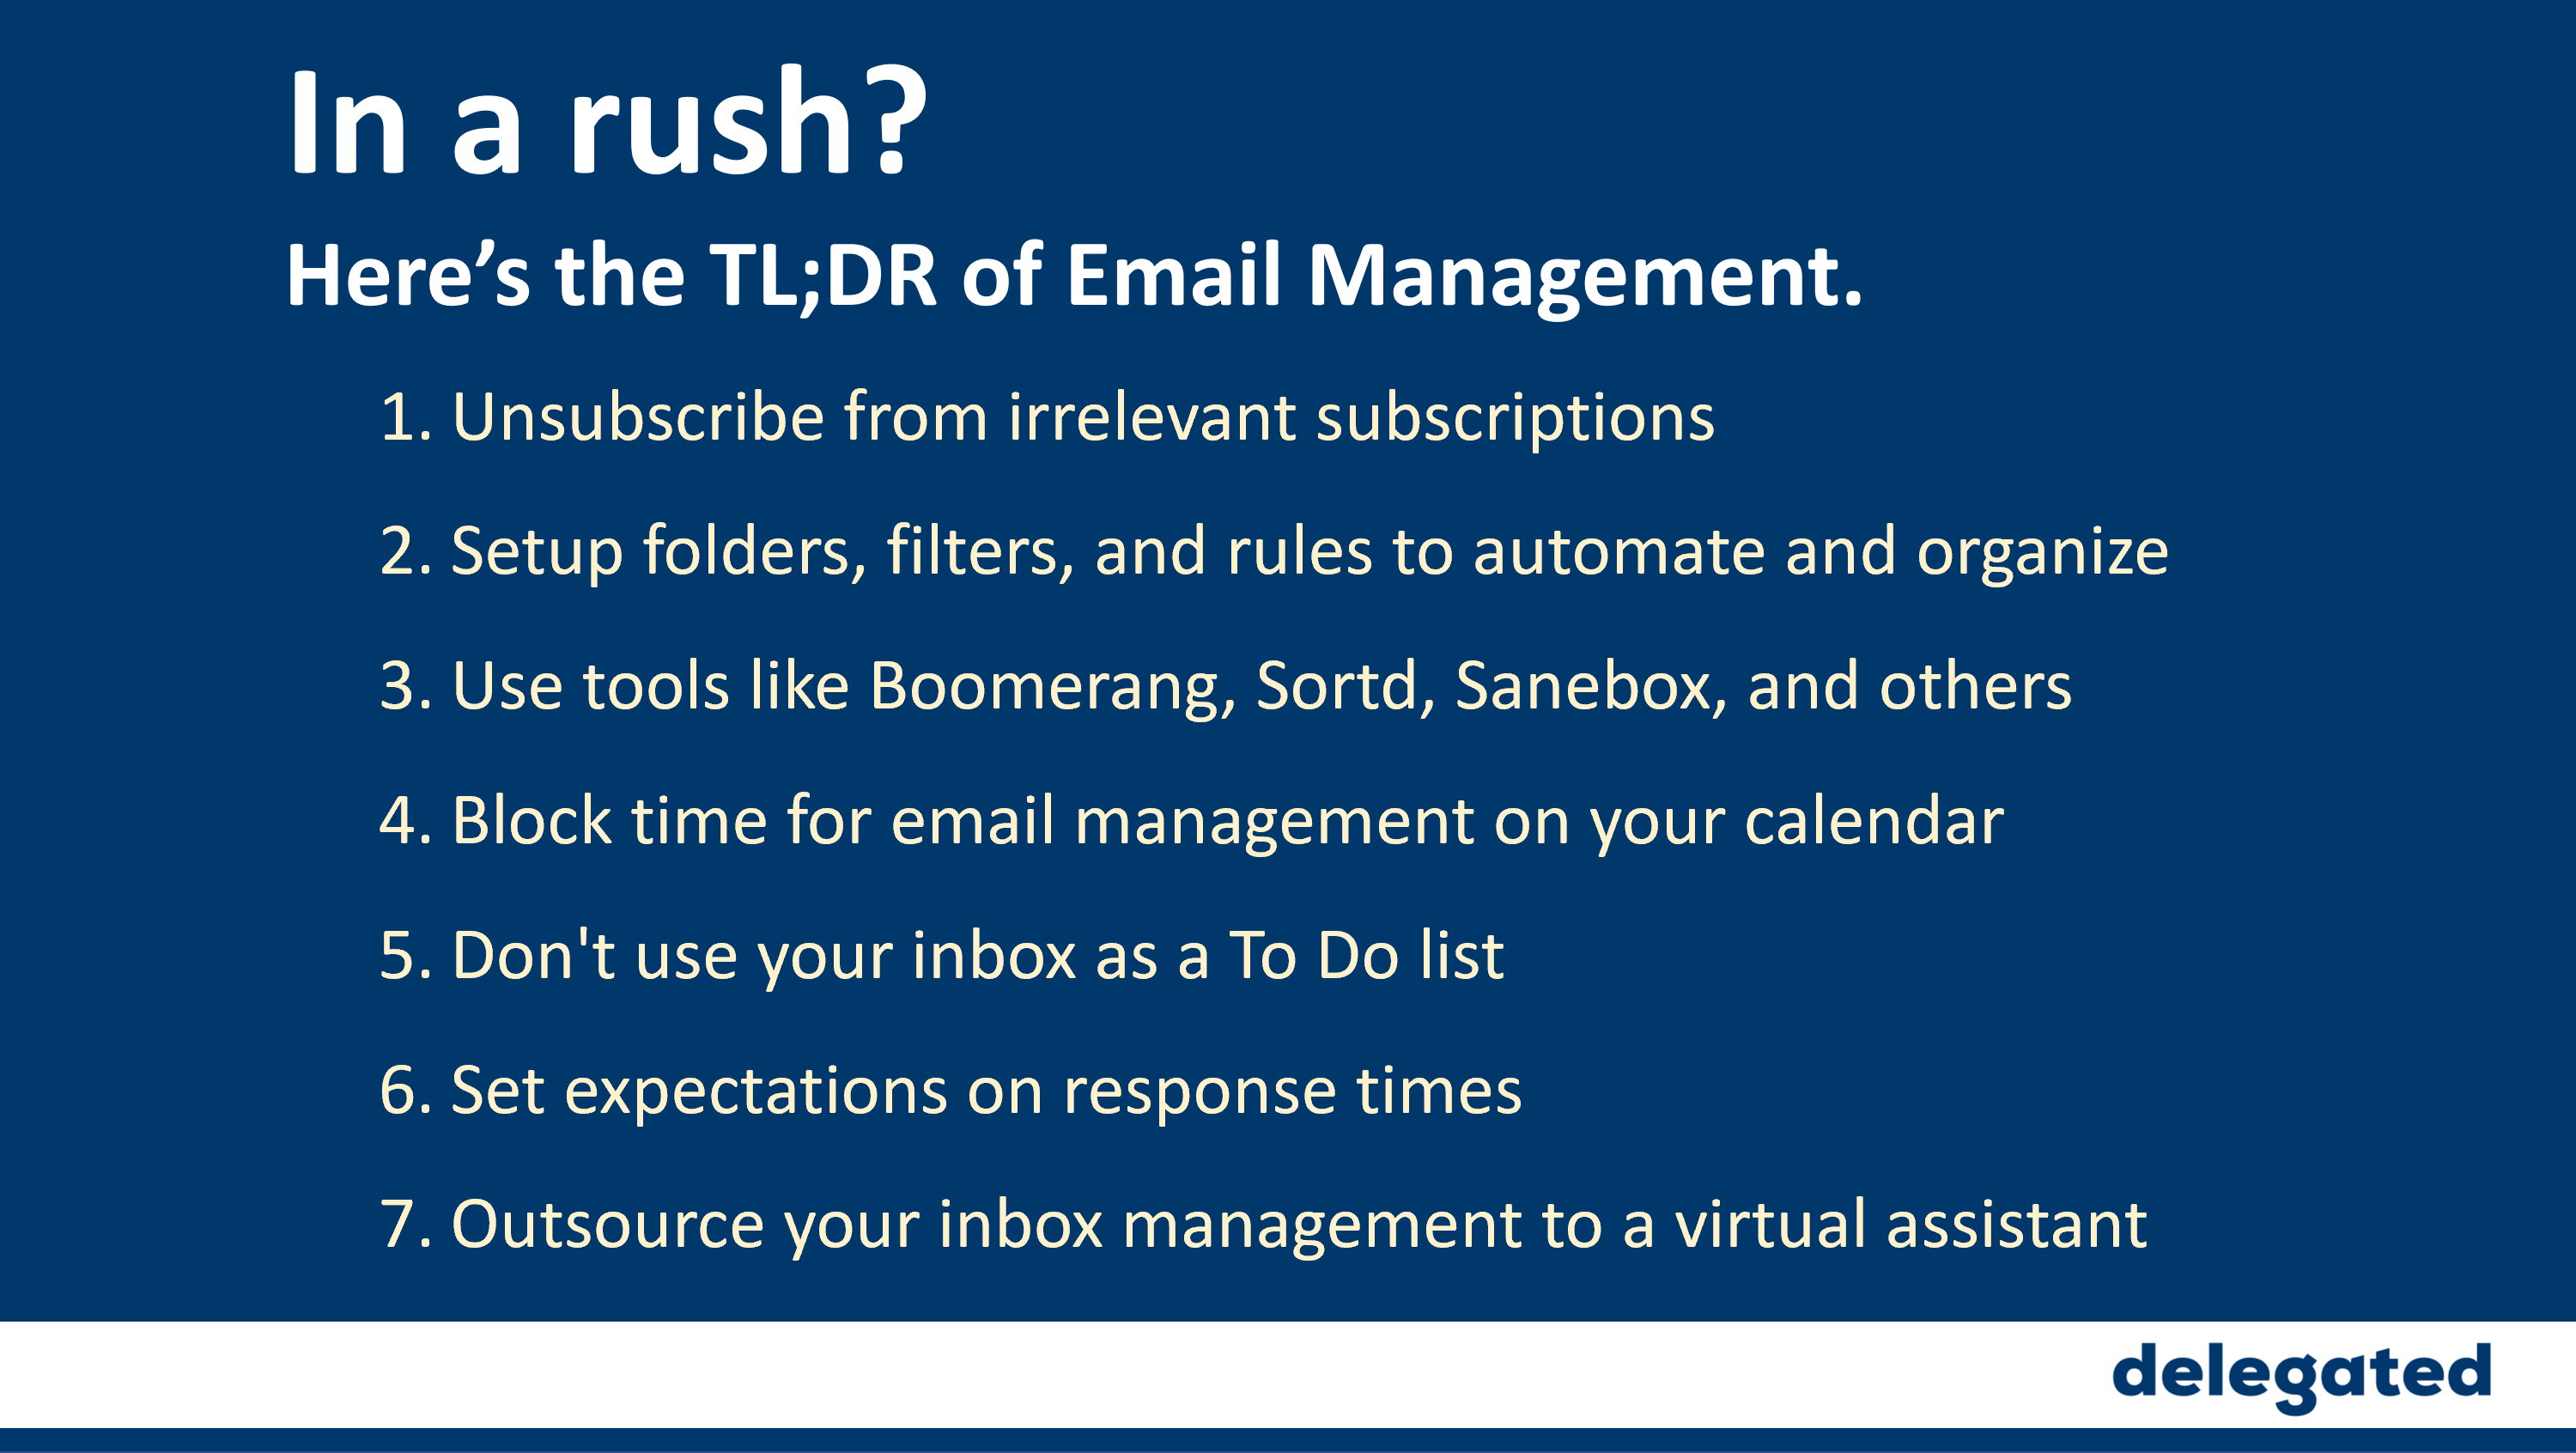 Email Management Tips and Tool Ideas